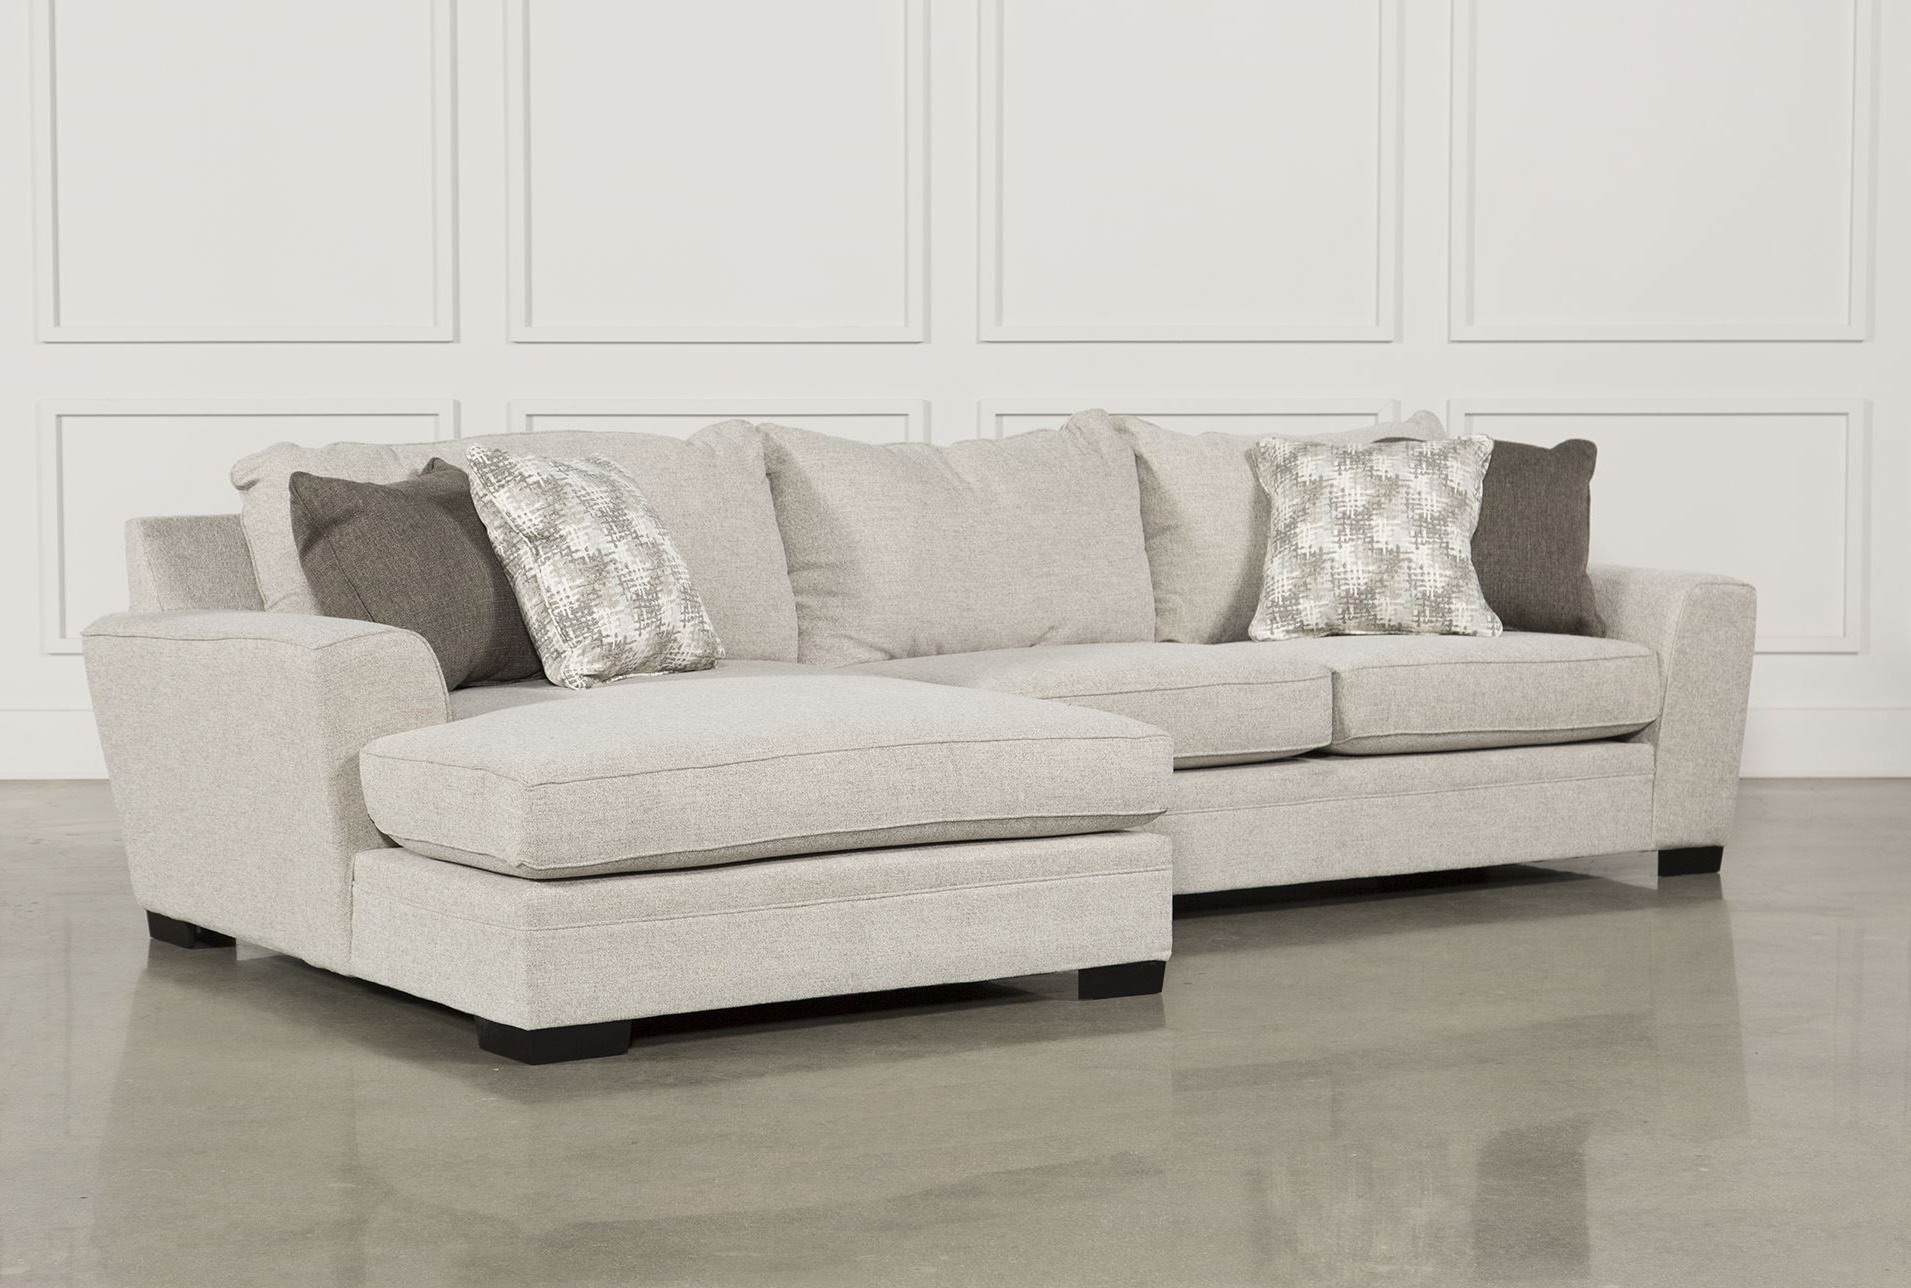 Malbry Point 3 Piece Sectionals With Laf Chaise Intended For Famous Delano 2 Piece Sectional W/raf Oversized Chaise (View 3 of 20)